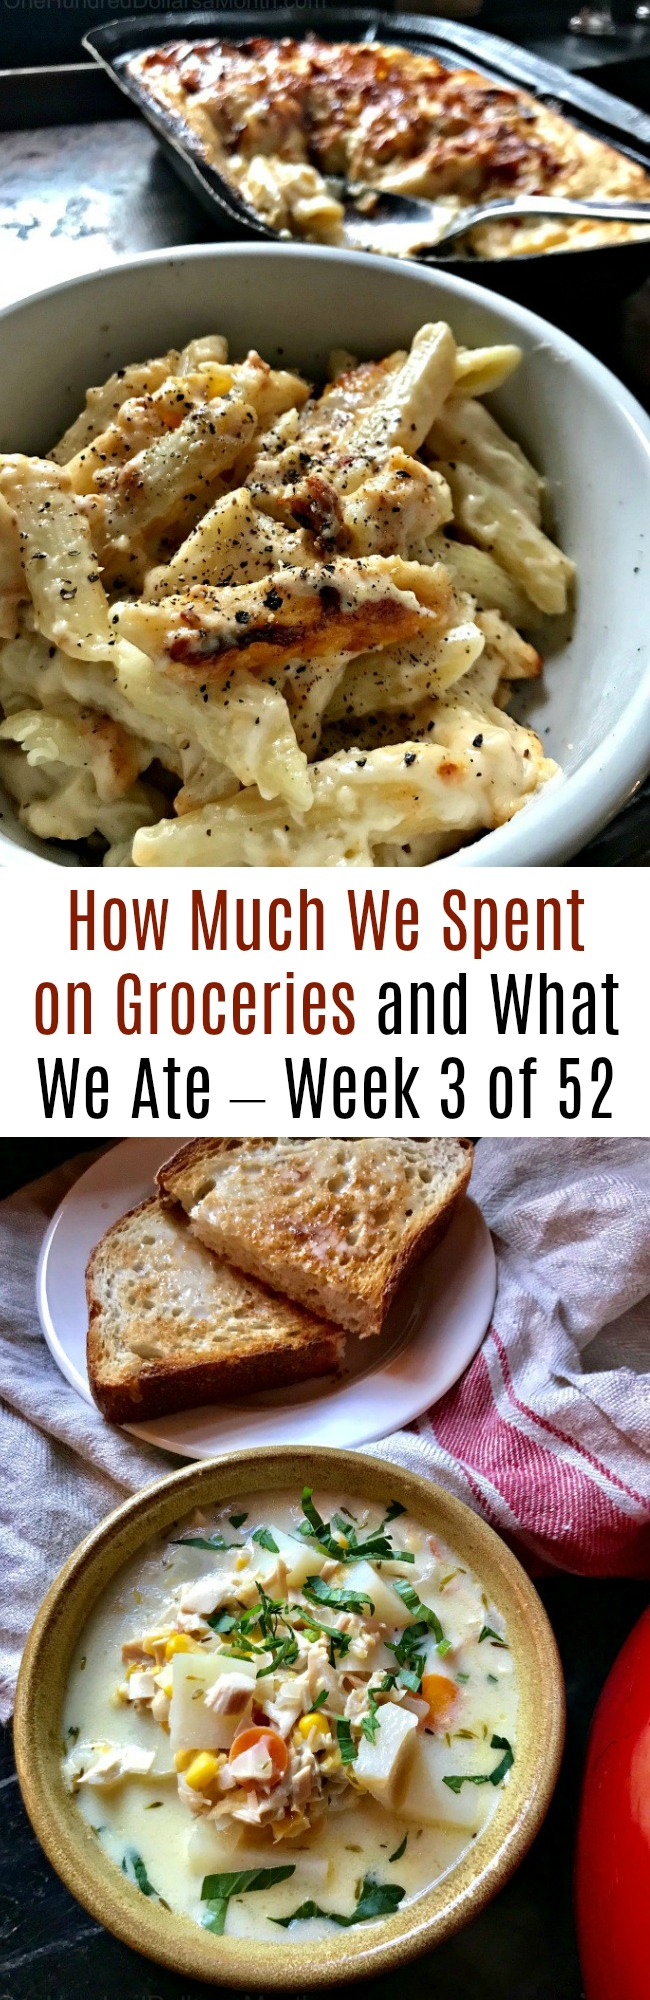 How Much We Spent on Groceries and What We Ate – Week 3 of 52